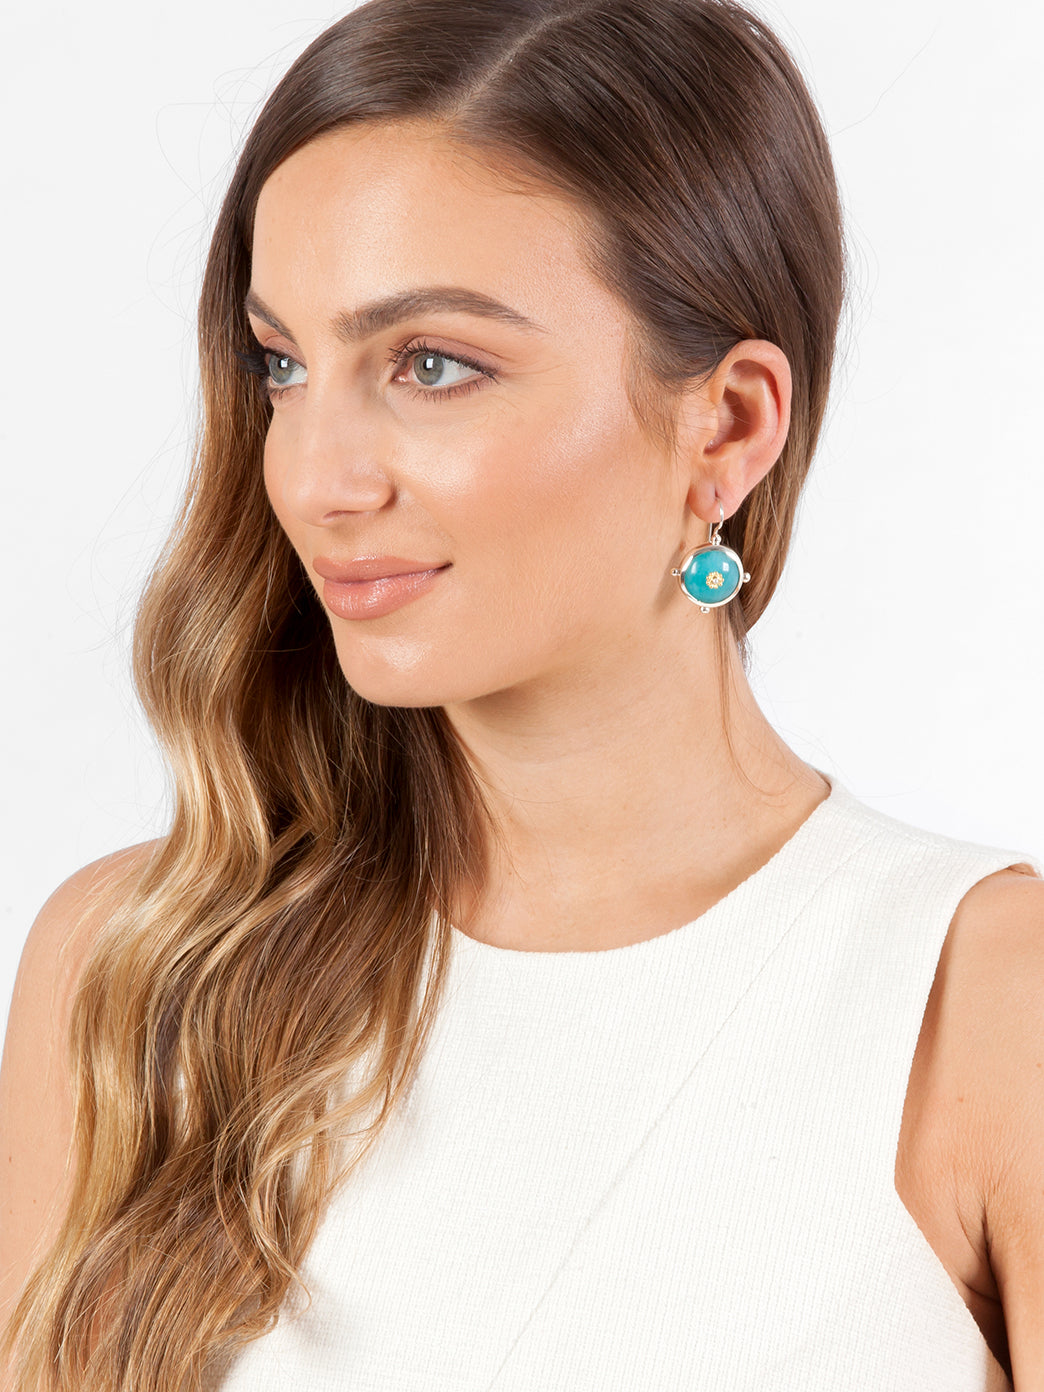 Fiorina Jewellery Button Earrings Amazonite Model